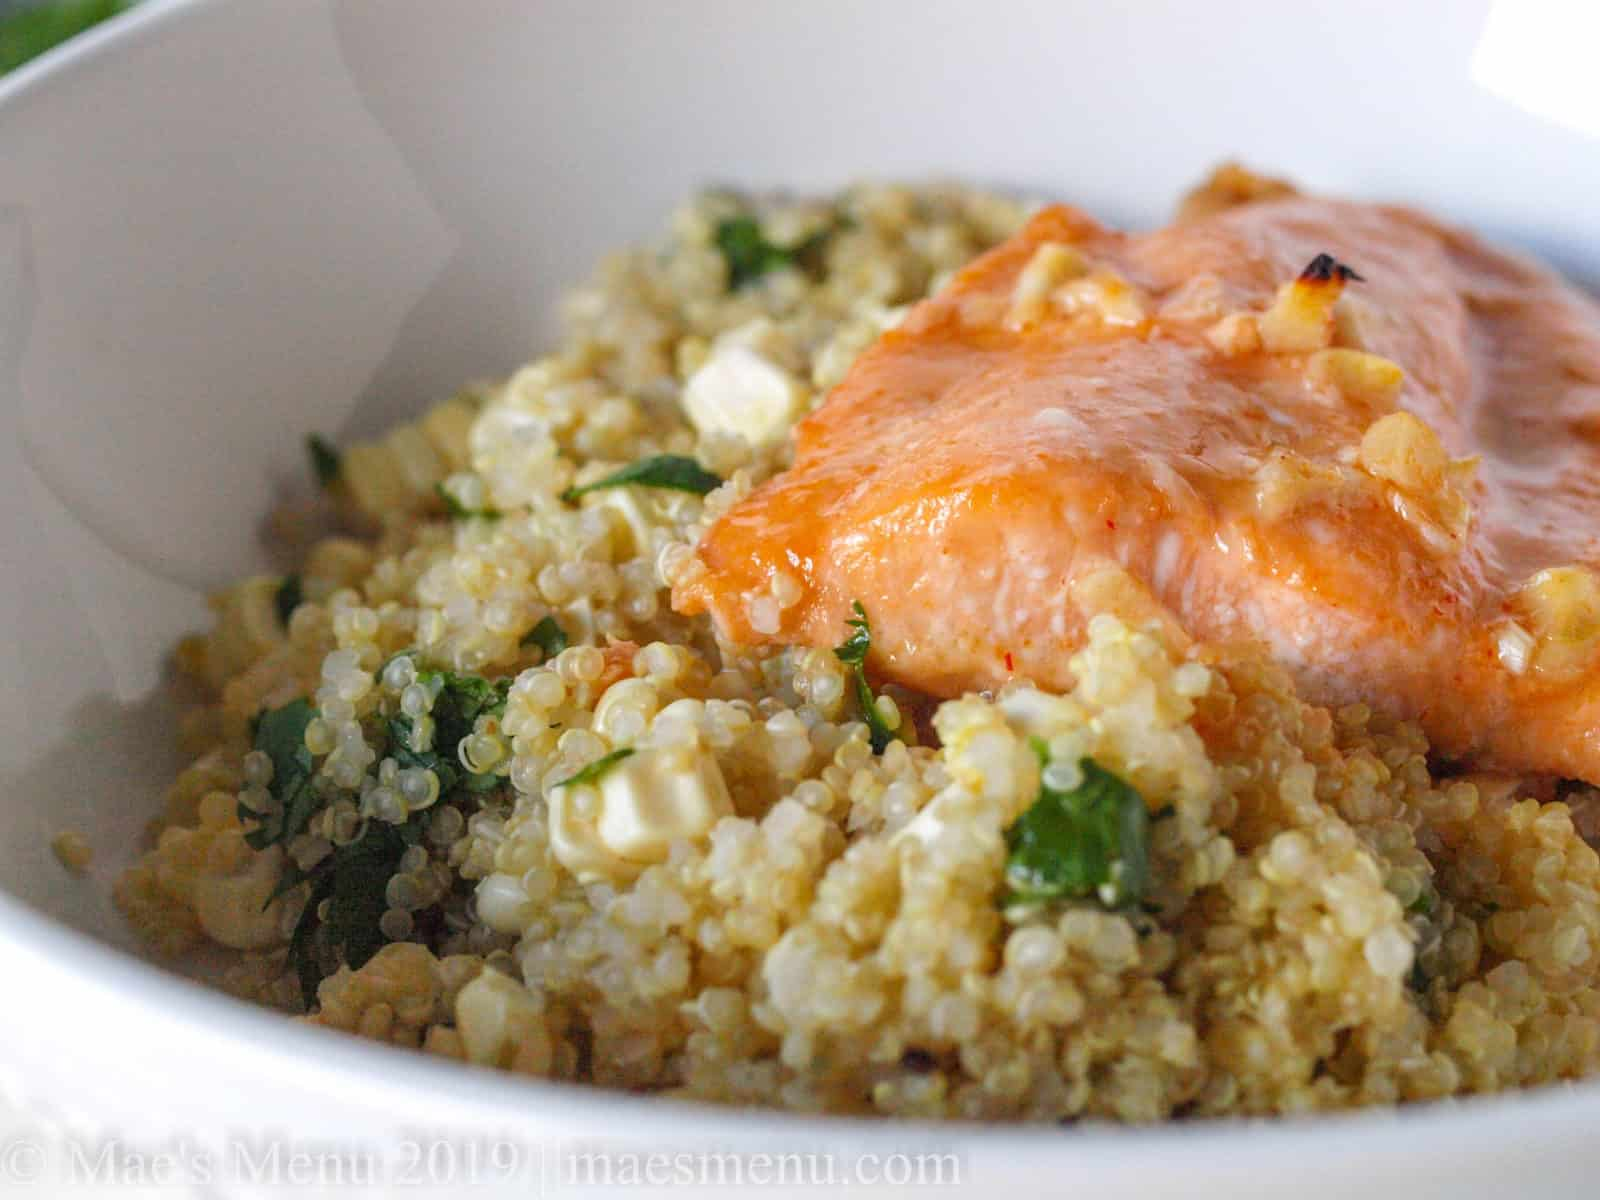 Up close of easy baked salmon on a bed of quinoa salad.